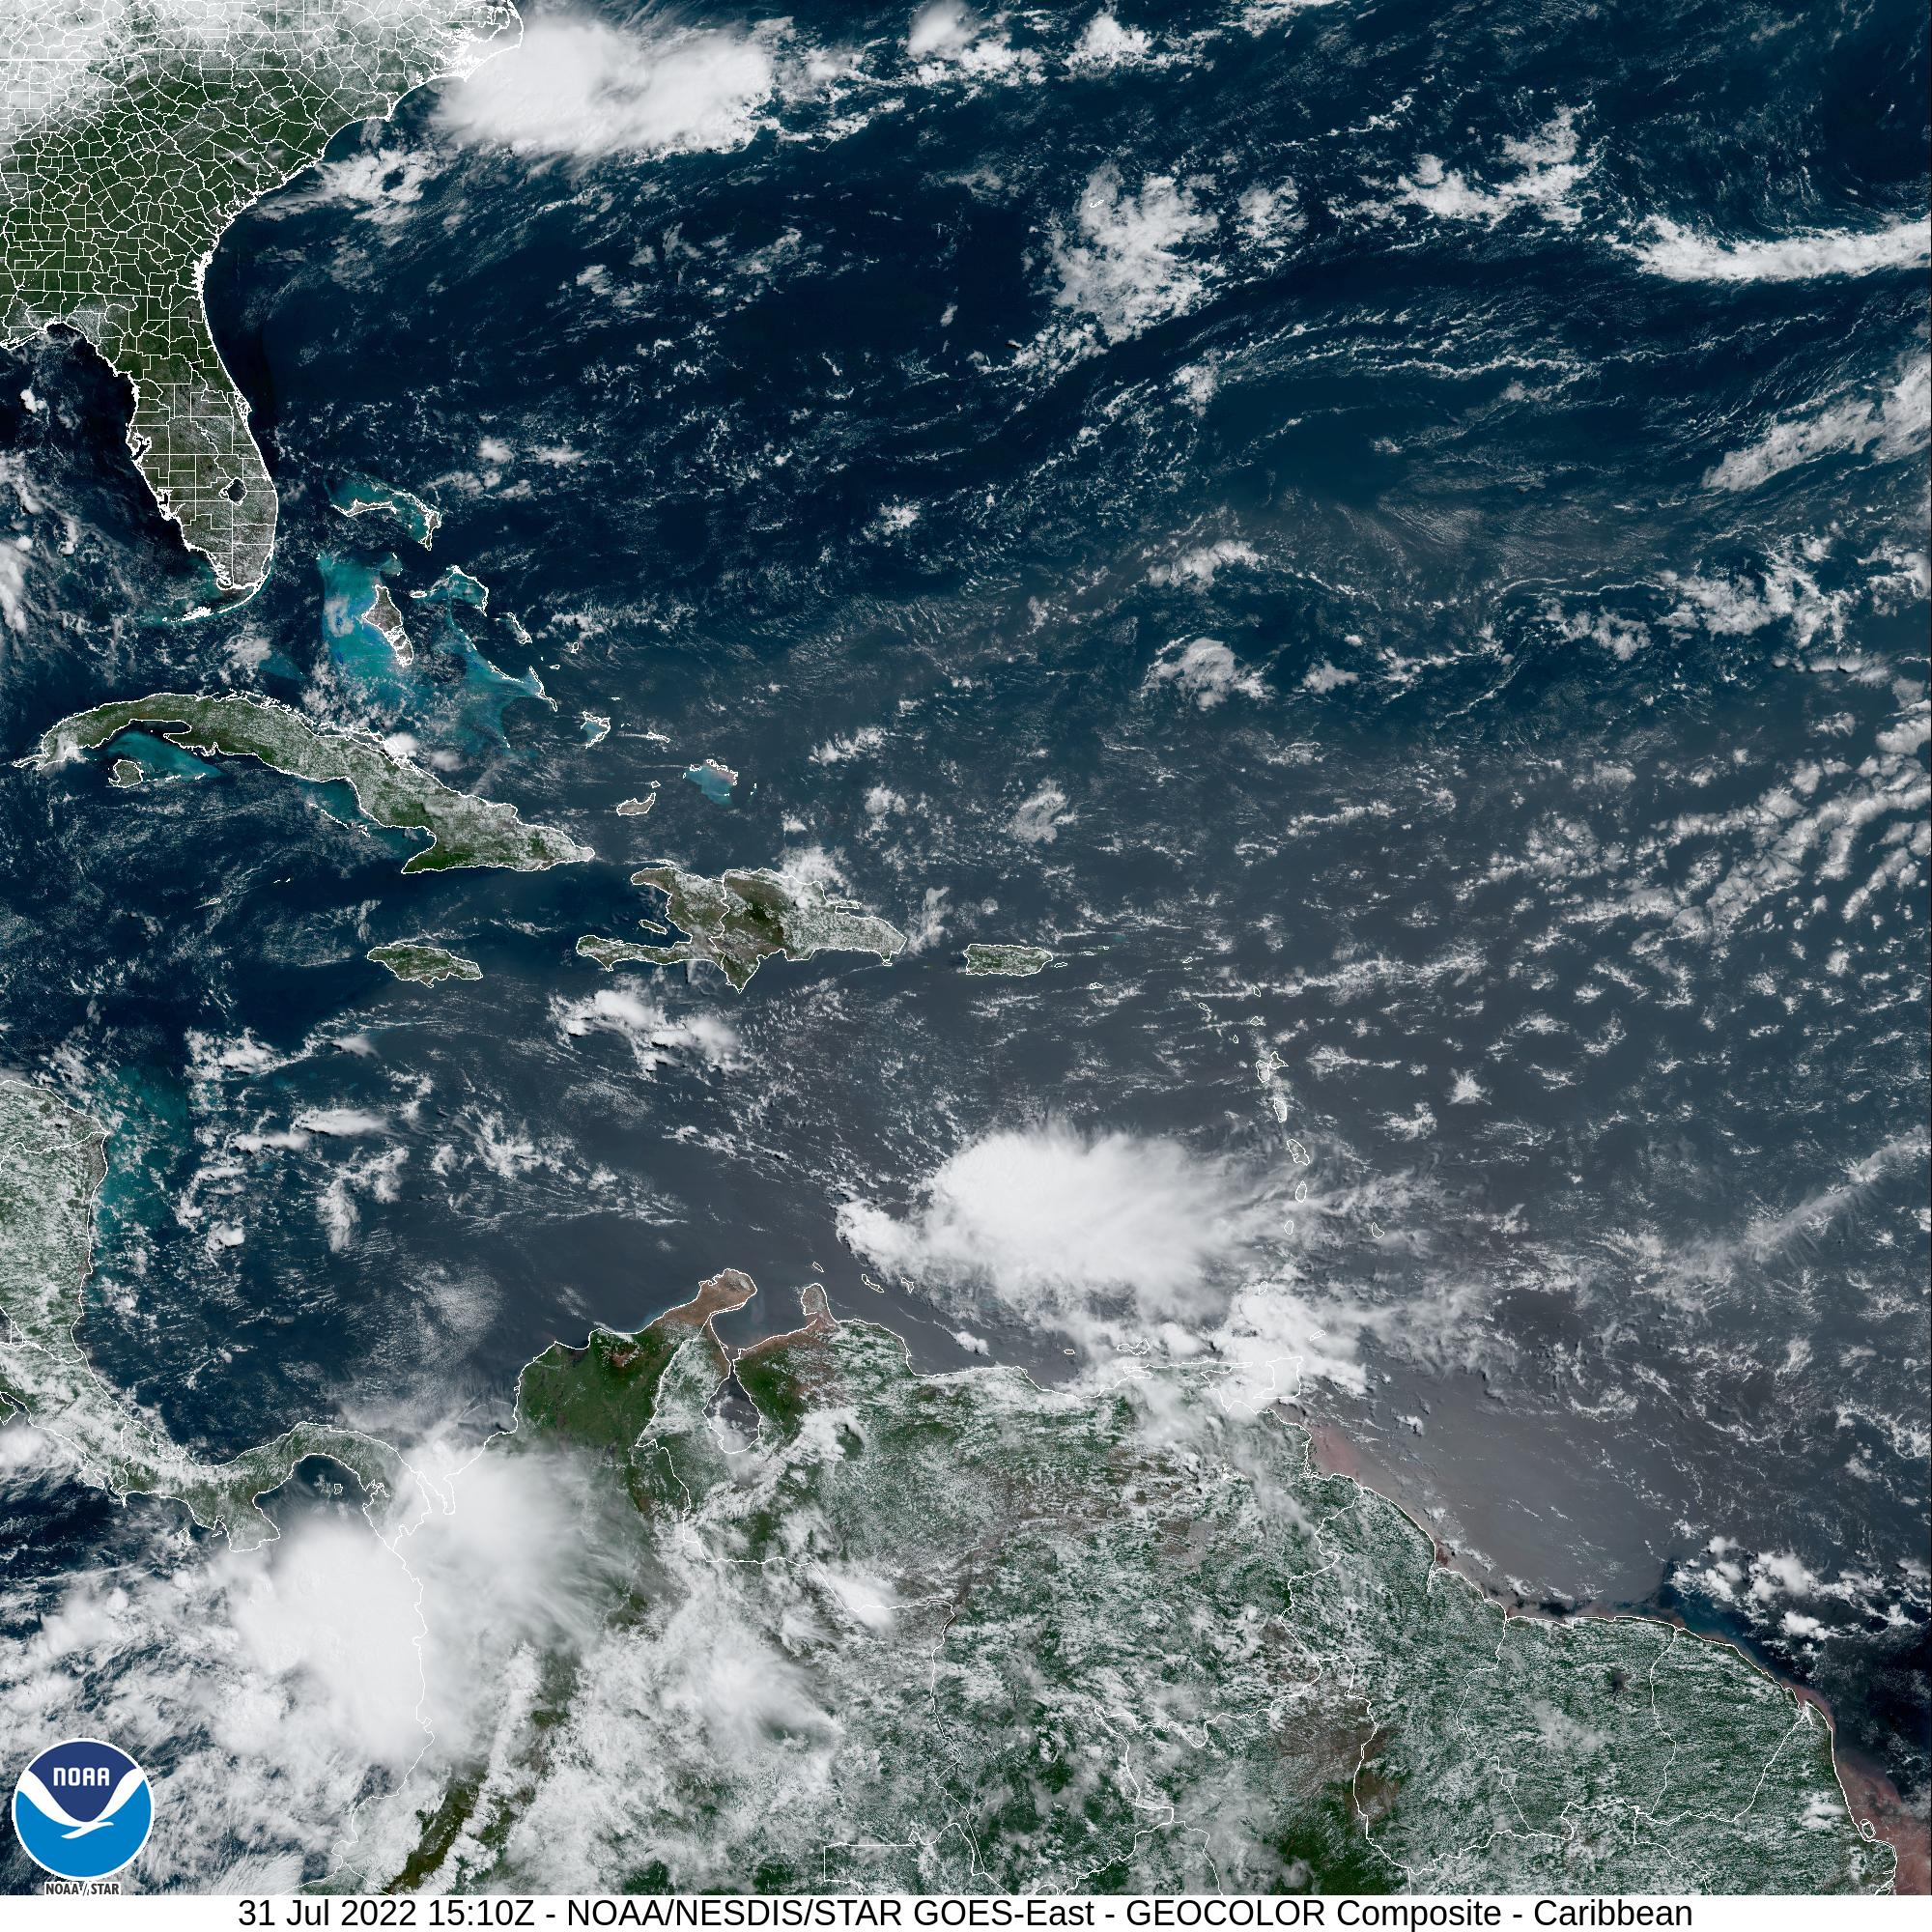 Latest GOES-East Satellite image of the region